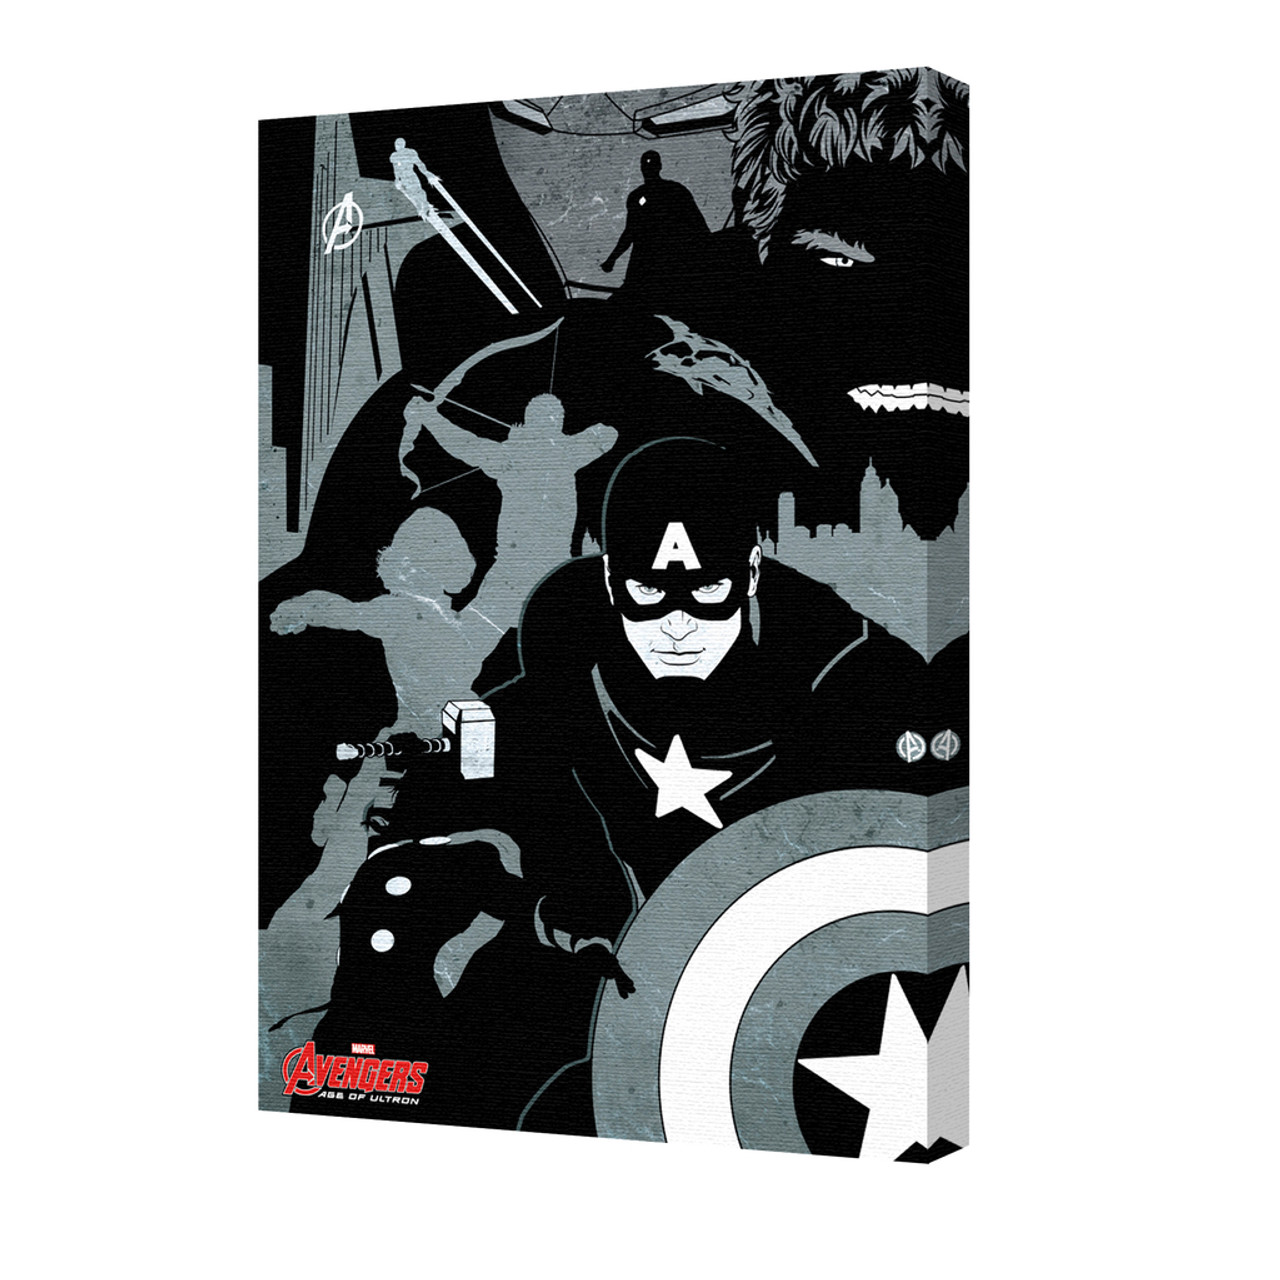 Avengers black and white marvel comics superheroes comic book characters stretched canvas 24x36 poster foundry